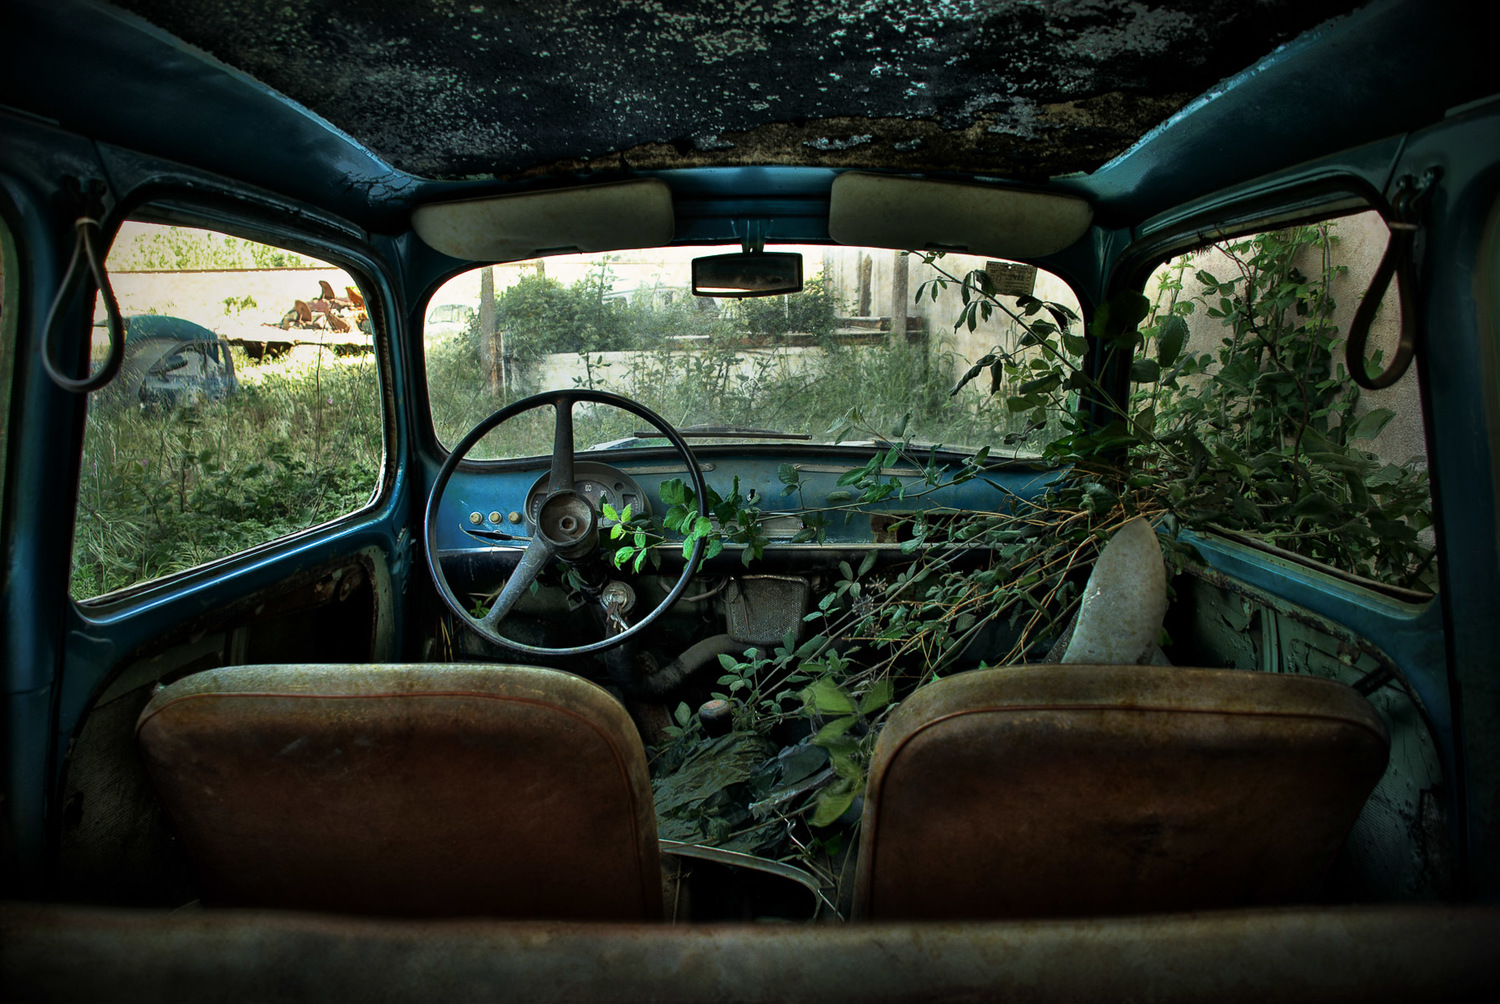 rusy-car-abandoned-in-nature.jpg